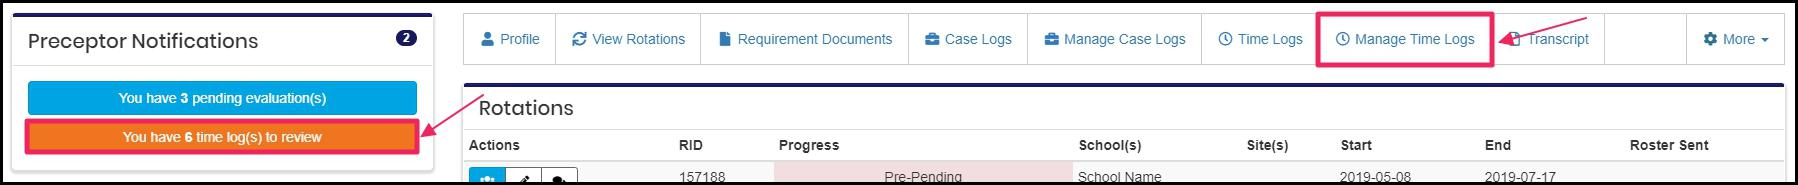 Image pointing to You have 6-time log(s) to review notification in Preceptor Notifications section and Manage Time logs tab on features bar on preceptor homepage